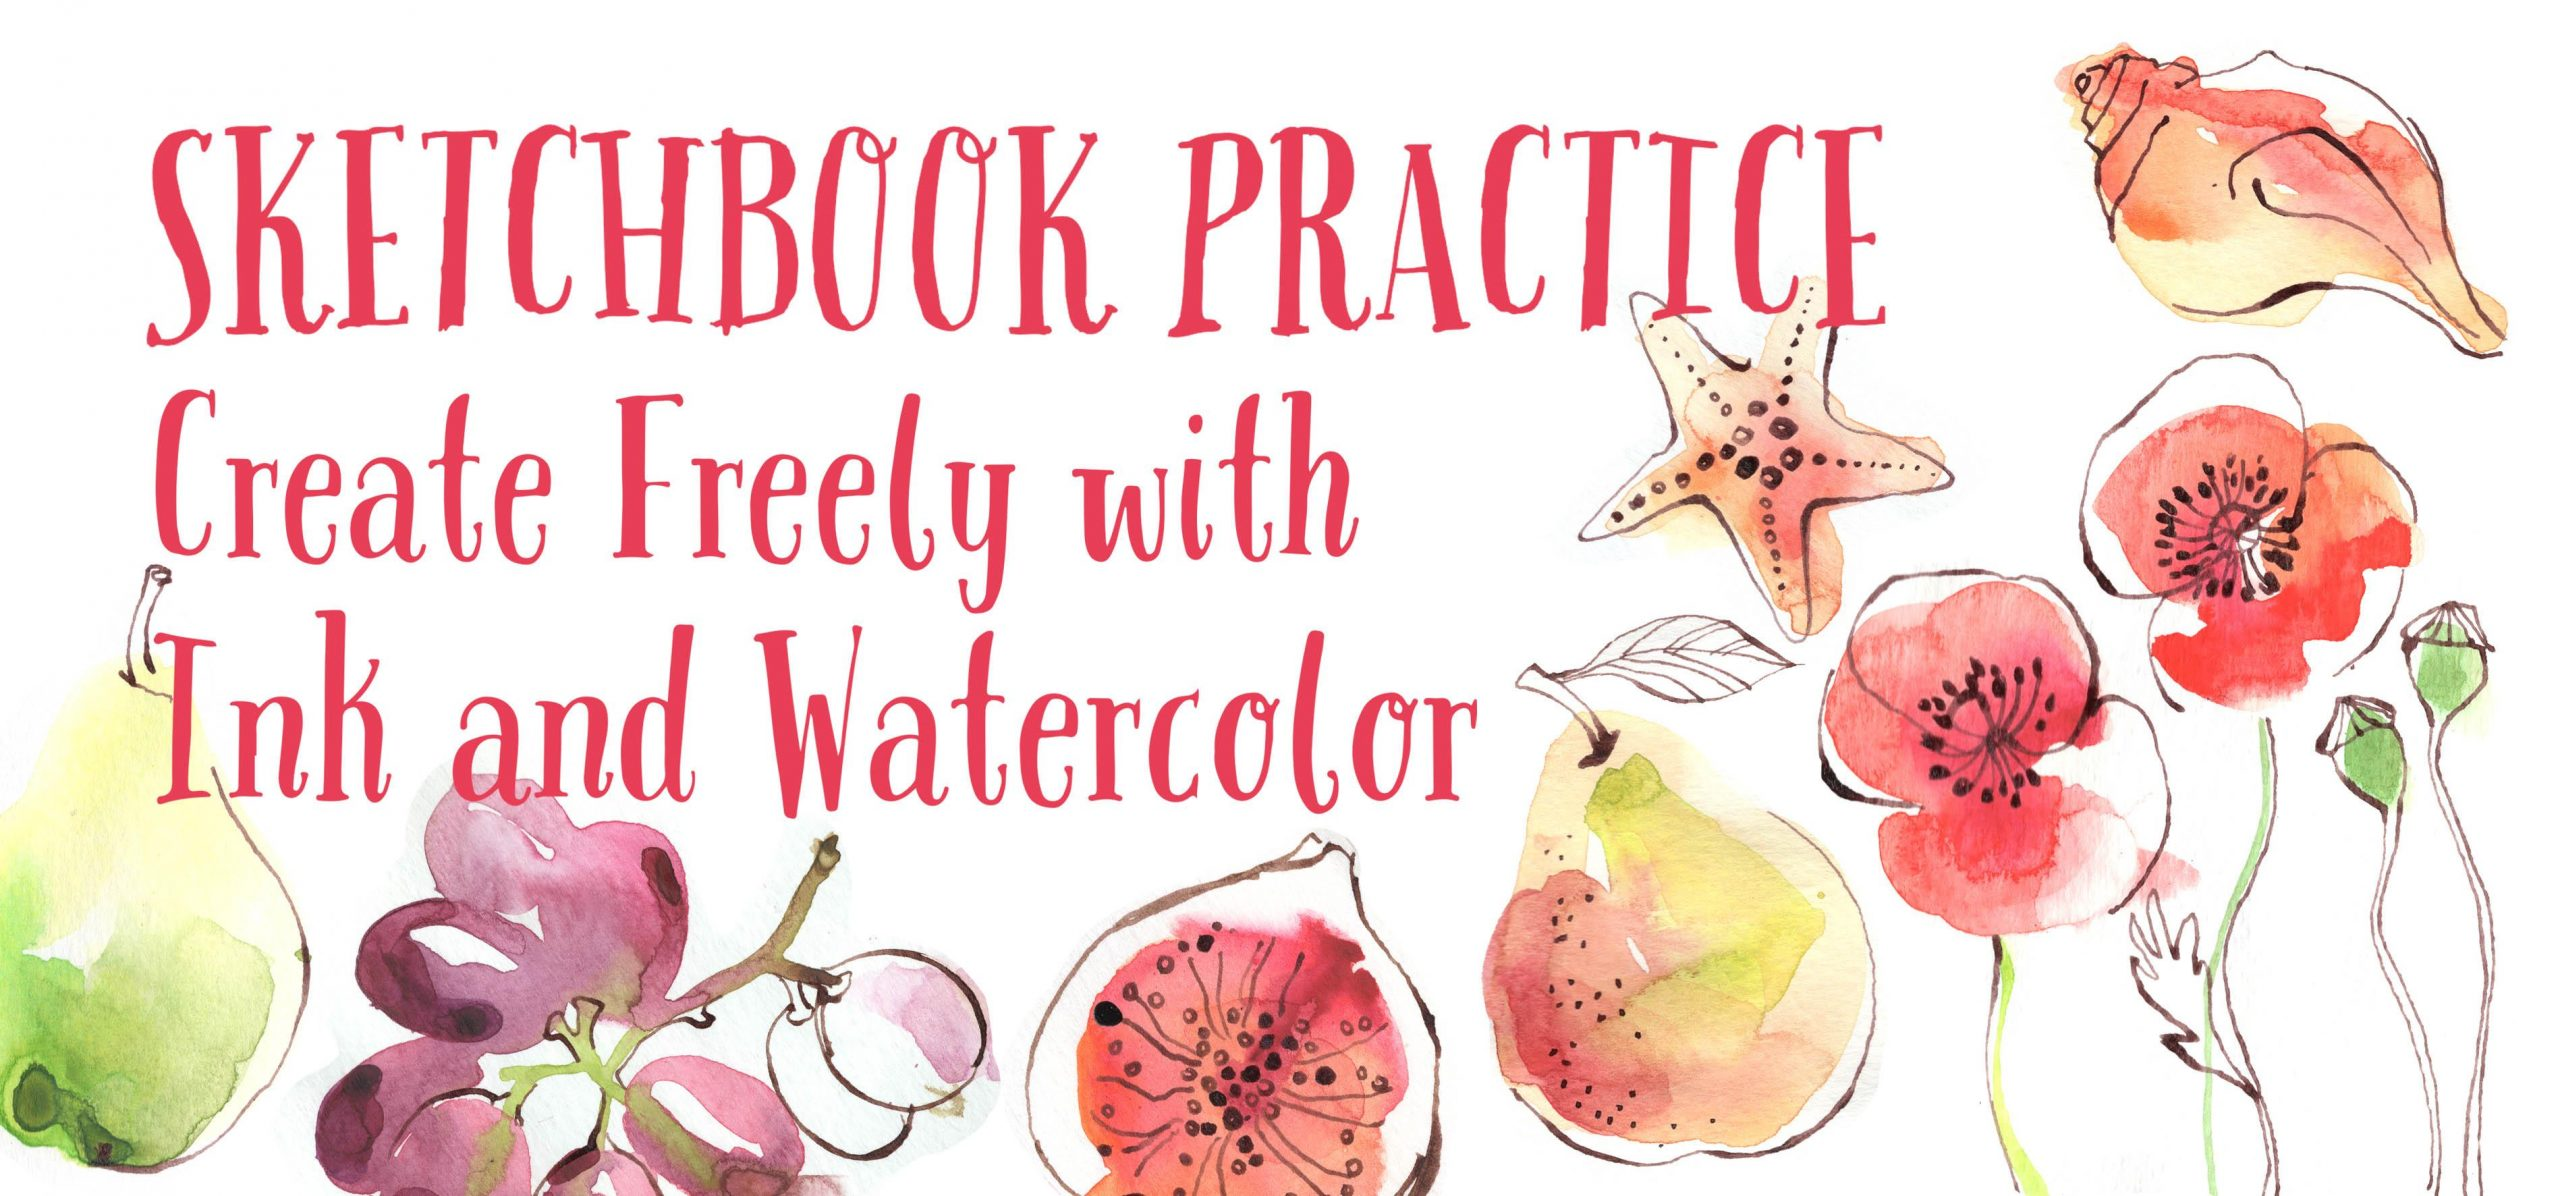 Beginner art journaling classes you can take online: Sketchbook Practice: Create Freely with Ink and Watercolor #artjournaling #artjournalideas #artjournalclasses